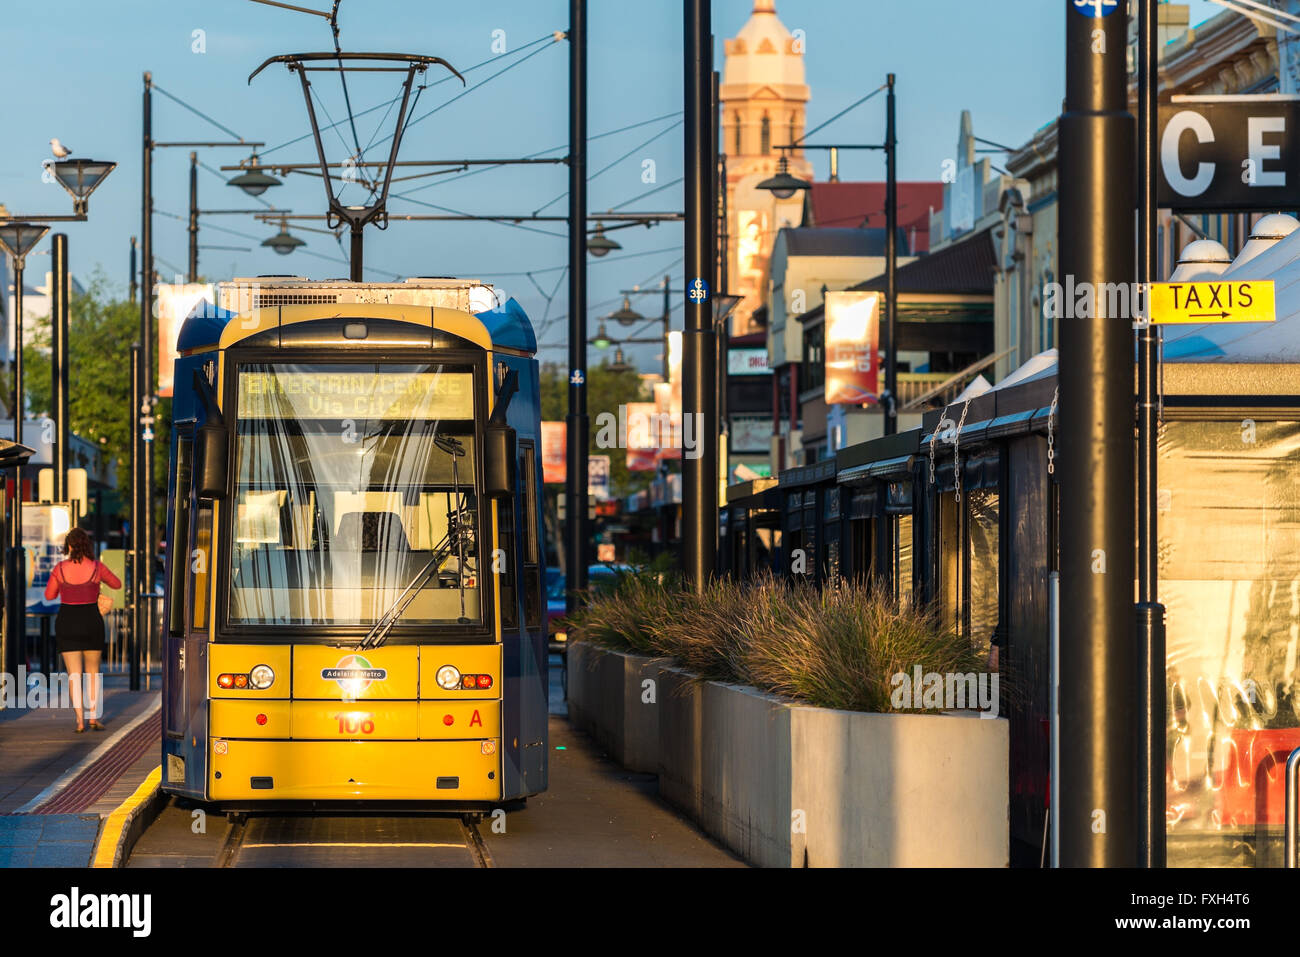 Adelaide, Australia - October 5, 2013: Tram at Moseley Square stop ready to depart towards Adelaide city. Stock Photo